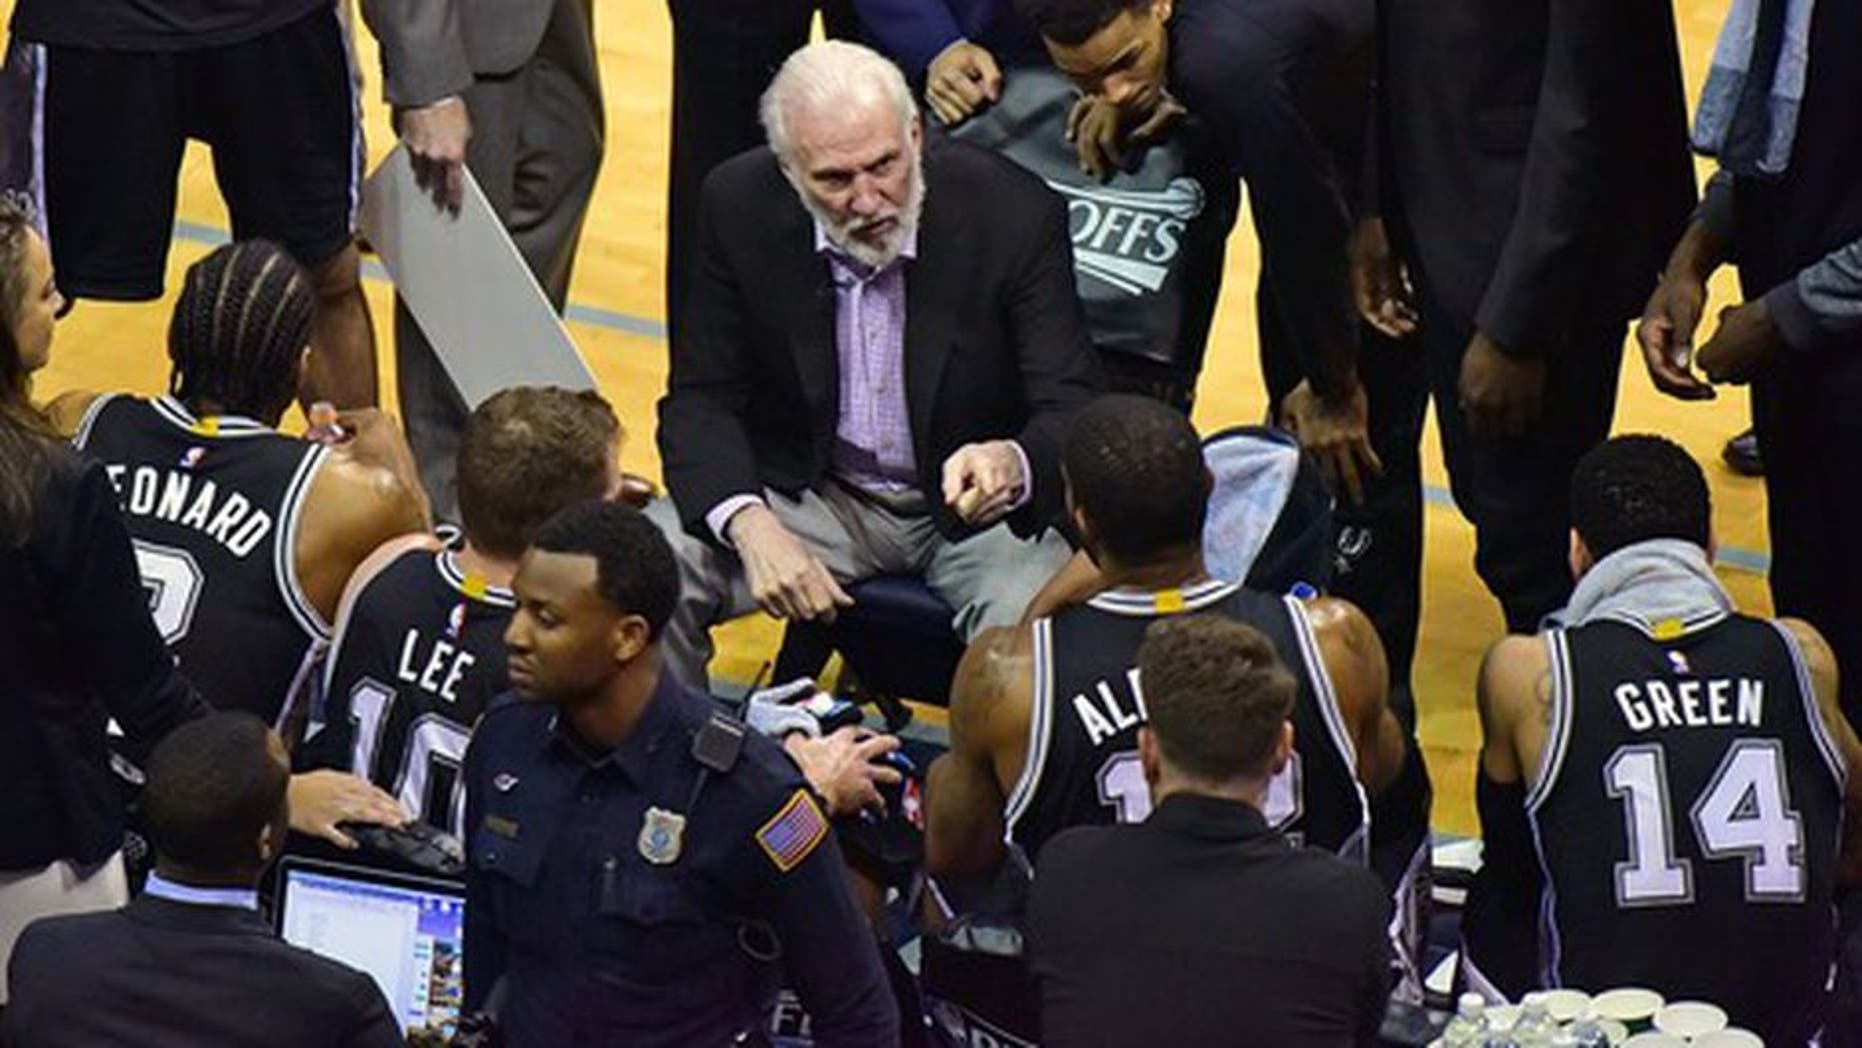 MEMPHIS, TN - APRIL 27: Head coach Gregg Popovich of the San Antonio Spurs coaches during the first half of Game 6 of the Western Conference Quarterfinals against the Memphis Grizzlies during the 2017 NBA Playoffs at FedExForum on April 27, 2017 in Memphis, Tennessee. NOTE TO USER: User expressly acknowledges and agrees that, by downloading and or using this photograph, User is consenting to the terms and conditions of the Getty Images License Agreement. (Photo by Frederick Breedon/Getty Images)